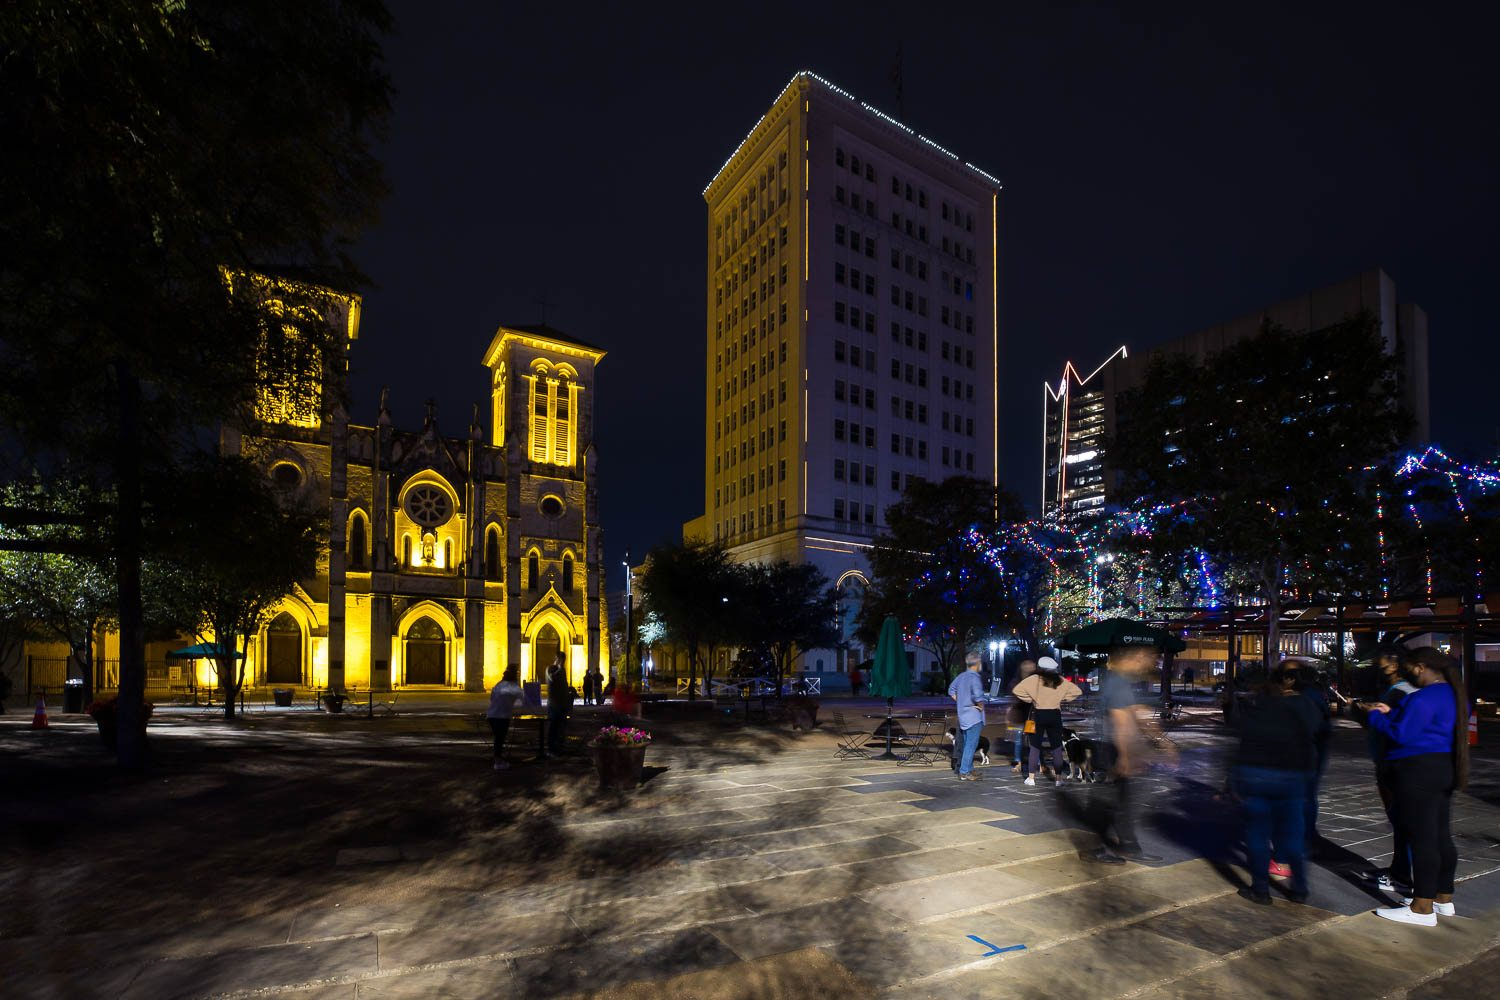 People take in Main Plaza on Nov. 26, 2020. Photo by Stephanie Marquez | Heron contributor